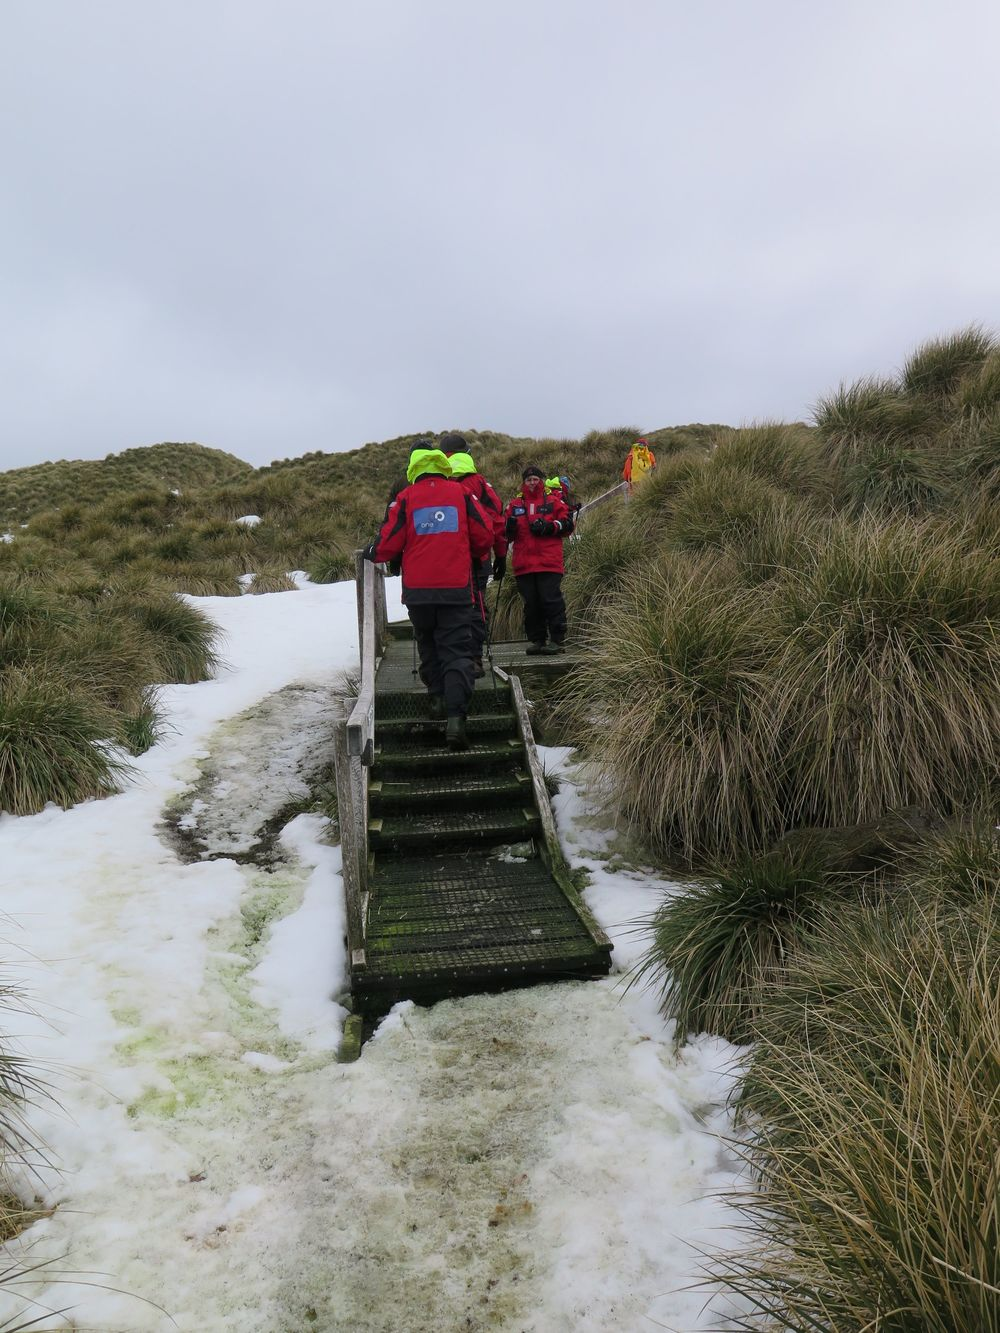 We ascended an icy wooden observation walkway (the only such visitor trail we would encounter on our three-week Antarctic voyage) to get a look at the wandering albatrosses nesting in the tussock grass.